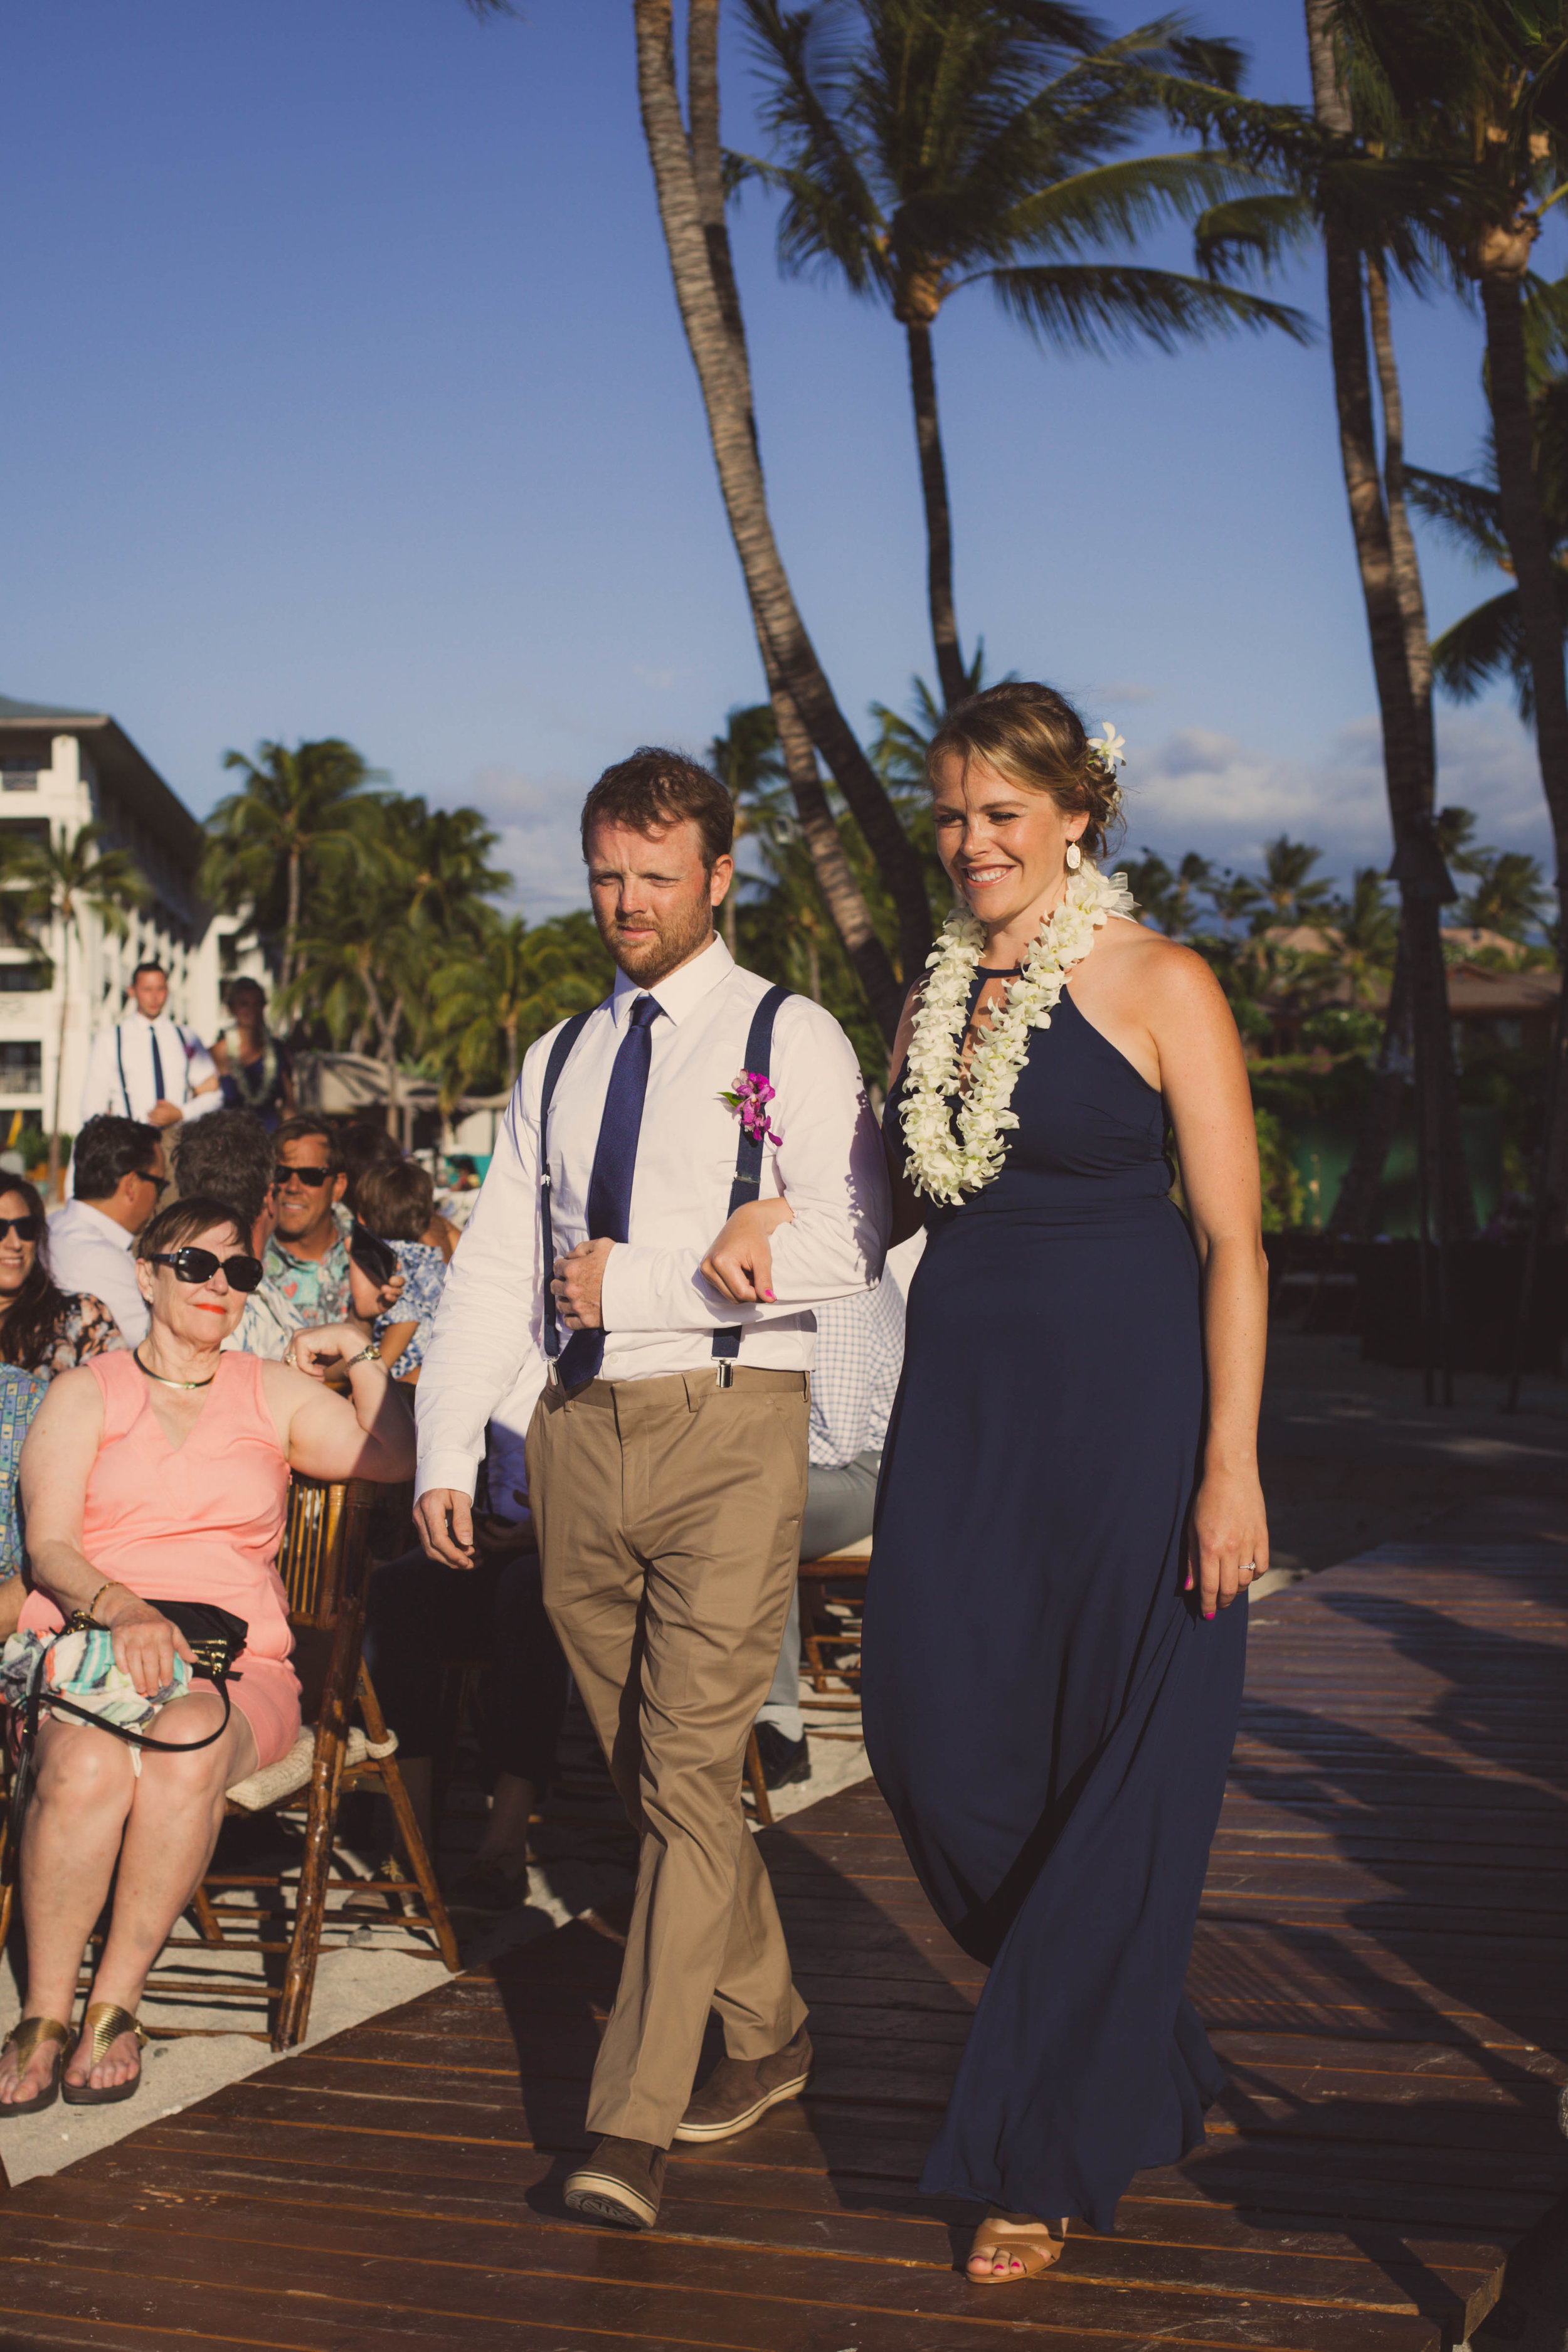 big island hawaii fairmont orchid beach wedding © kelilina photography 20170812173315-1.jpg